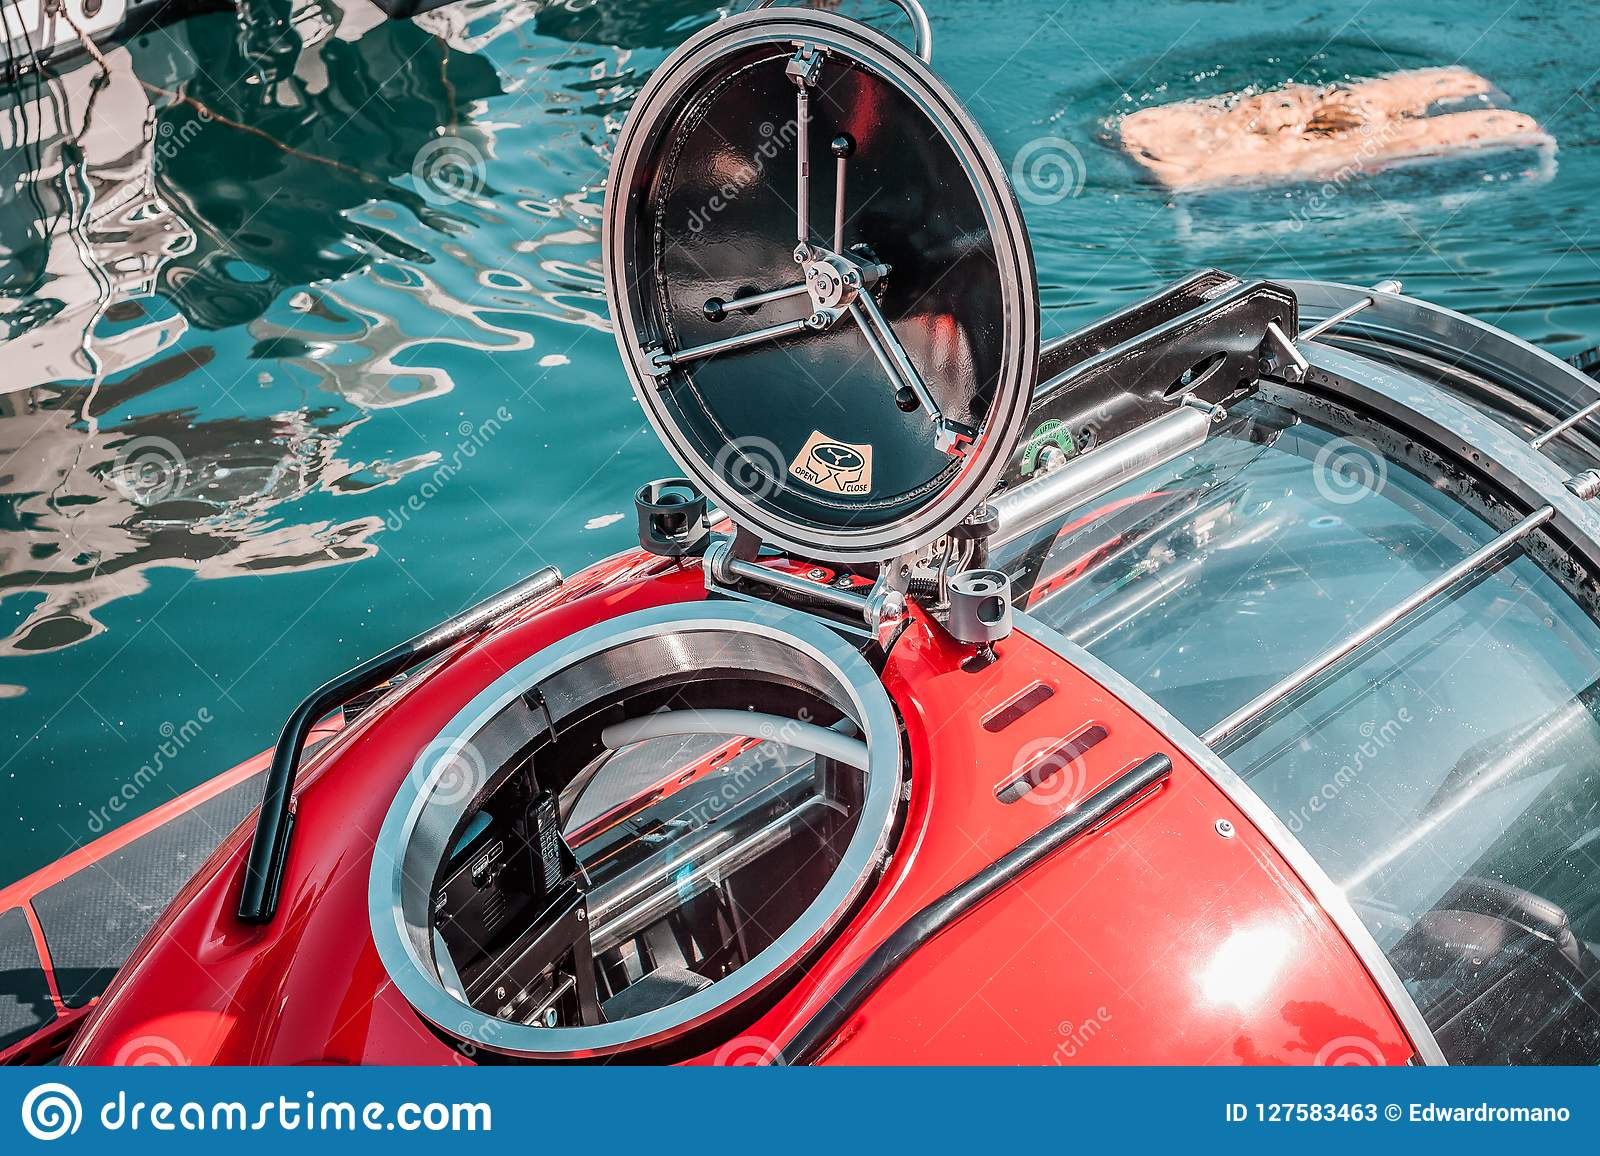 Small Submarine, Red Color  Round Hatch, Scuba Diving